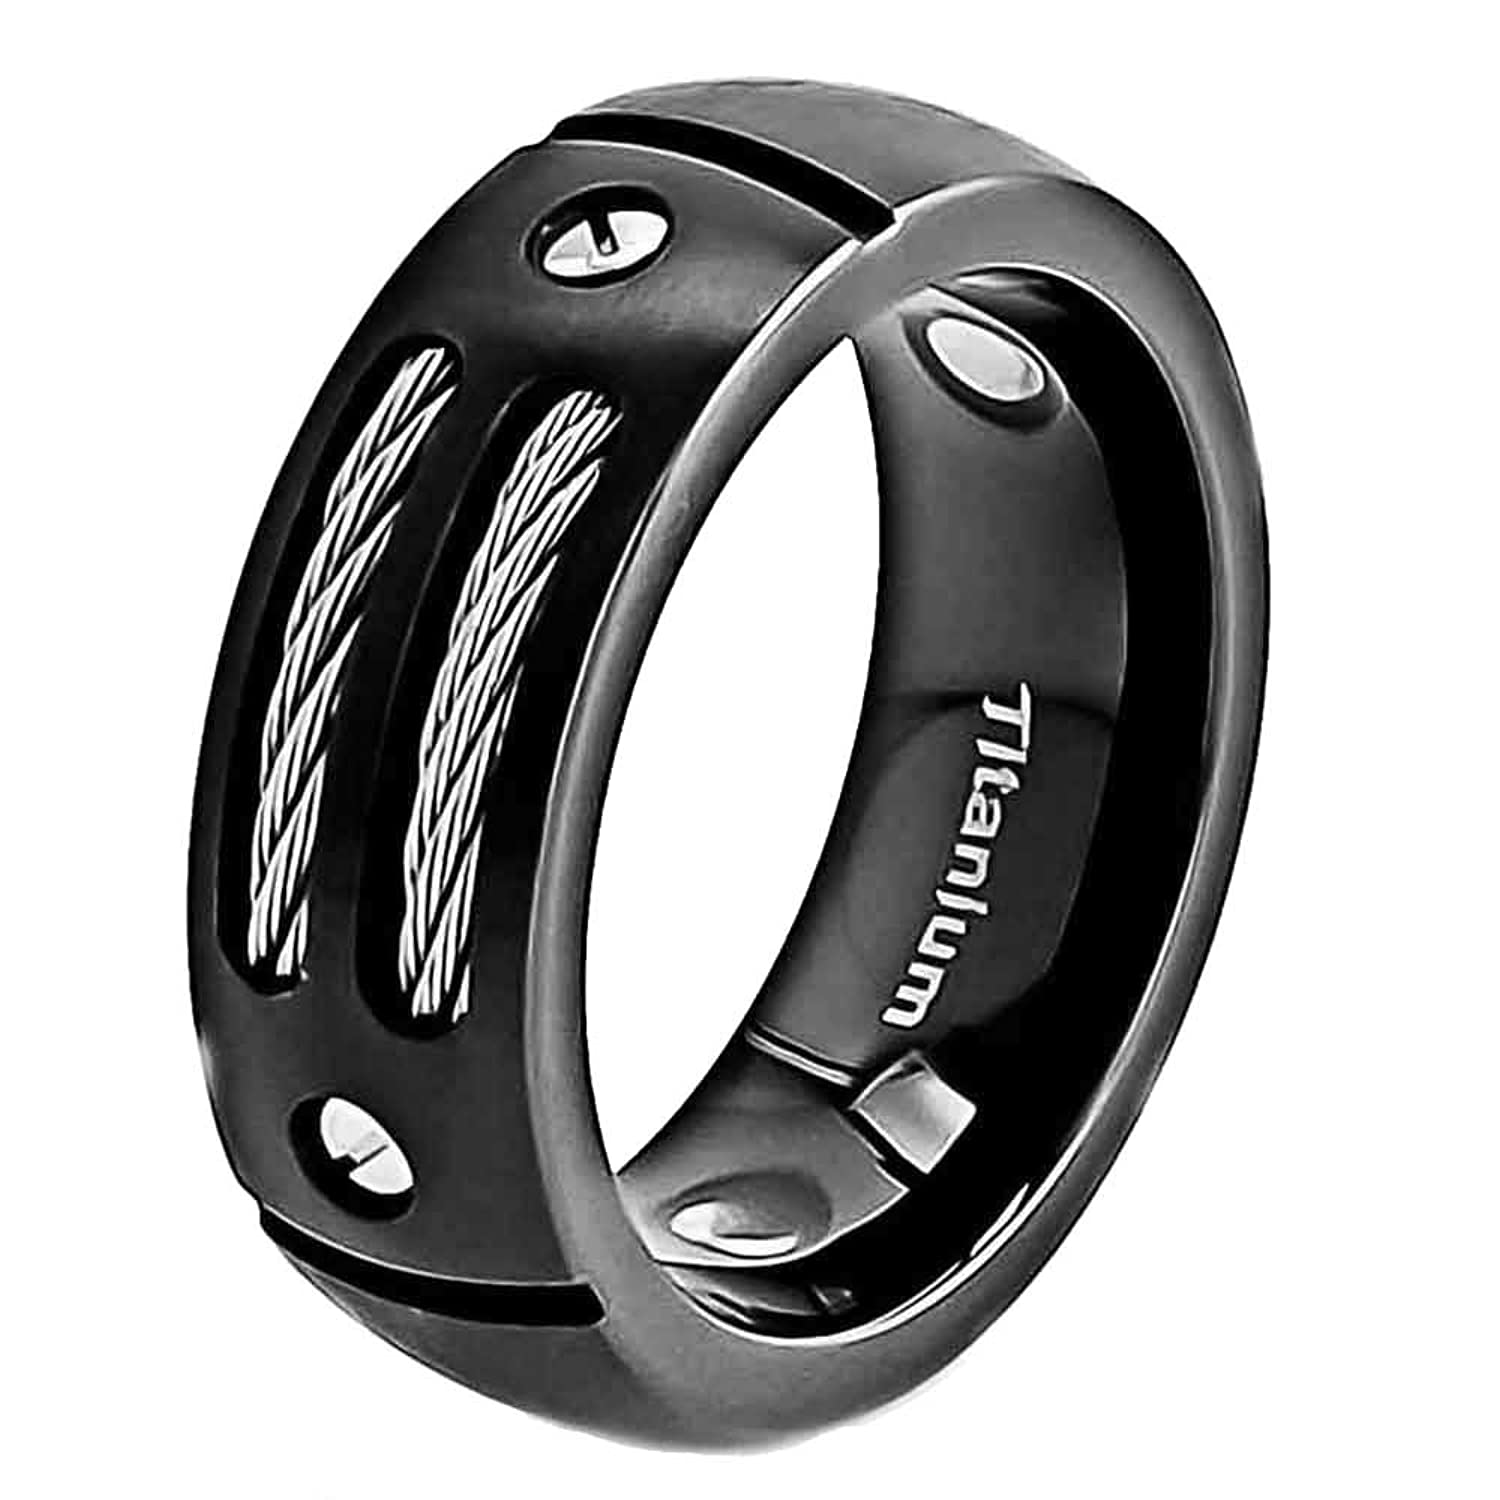 8mm Men BlackSilver Titanium Wedding Band with Stainless Steel